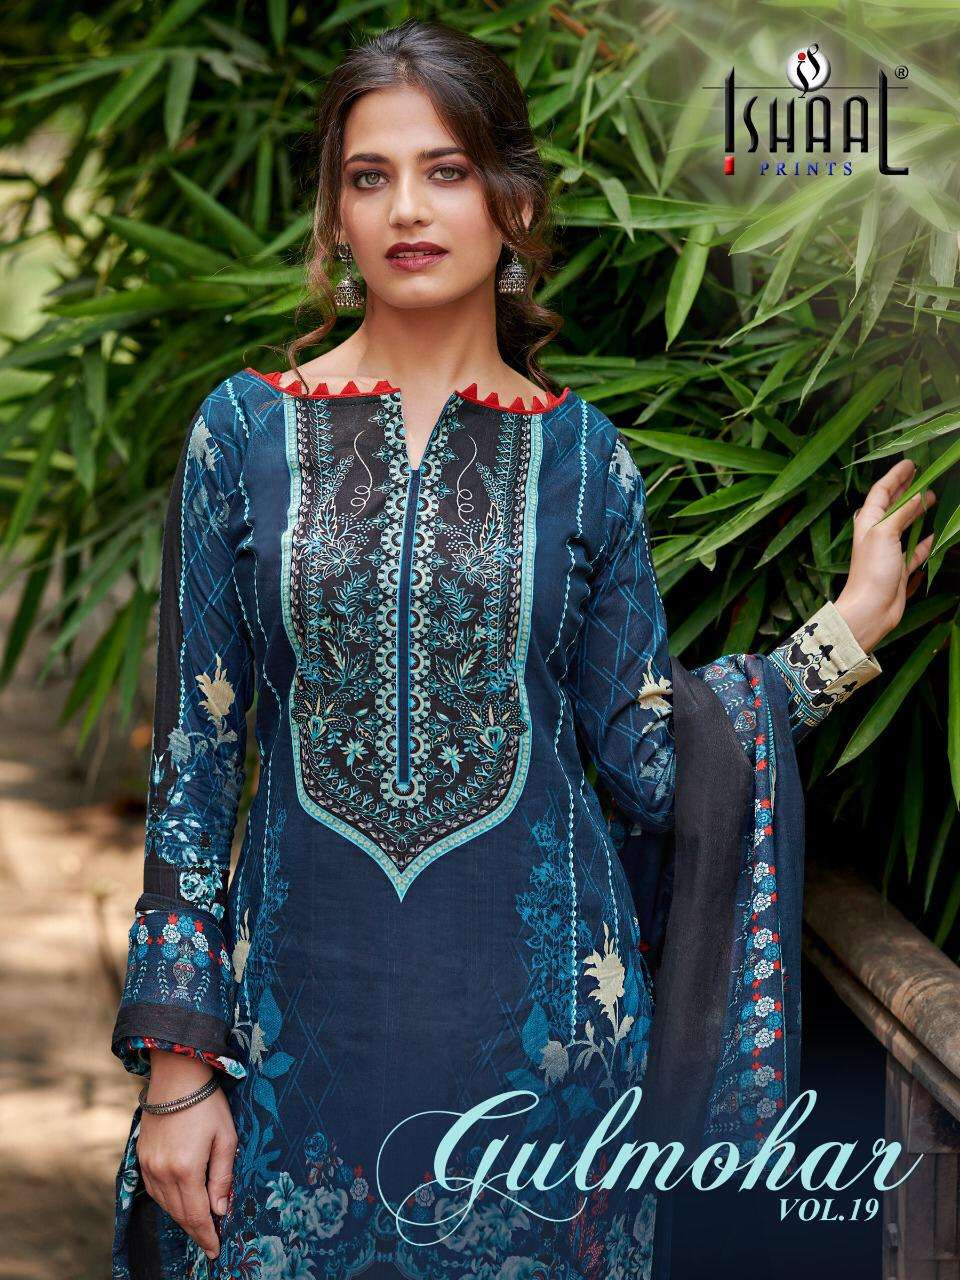 ISHAAL PRINT GULMOHAR VOL 19 PURE LAWN PRINTED FANCY DRESS MATERIAL COLLECTION